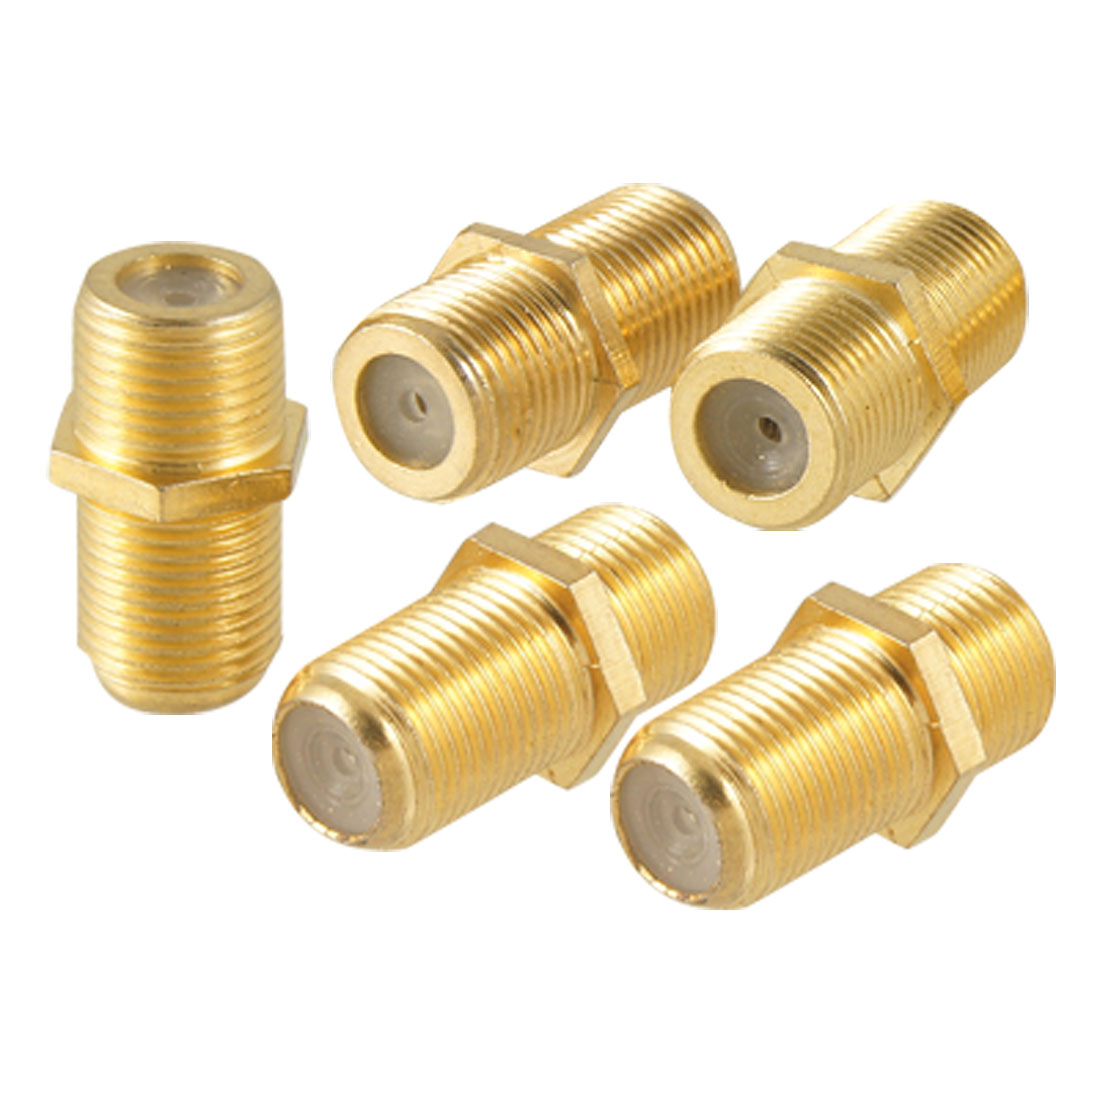 5 Pcs Gold Tone Plated F Type Female to Female Jack RF Adapter Connector